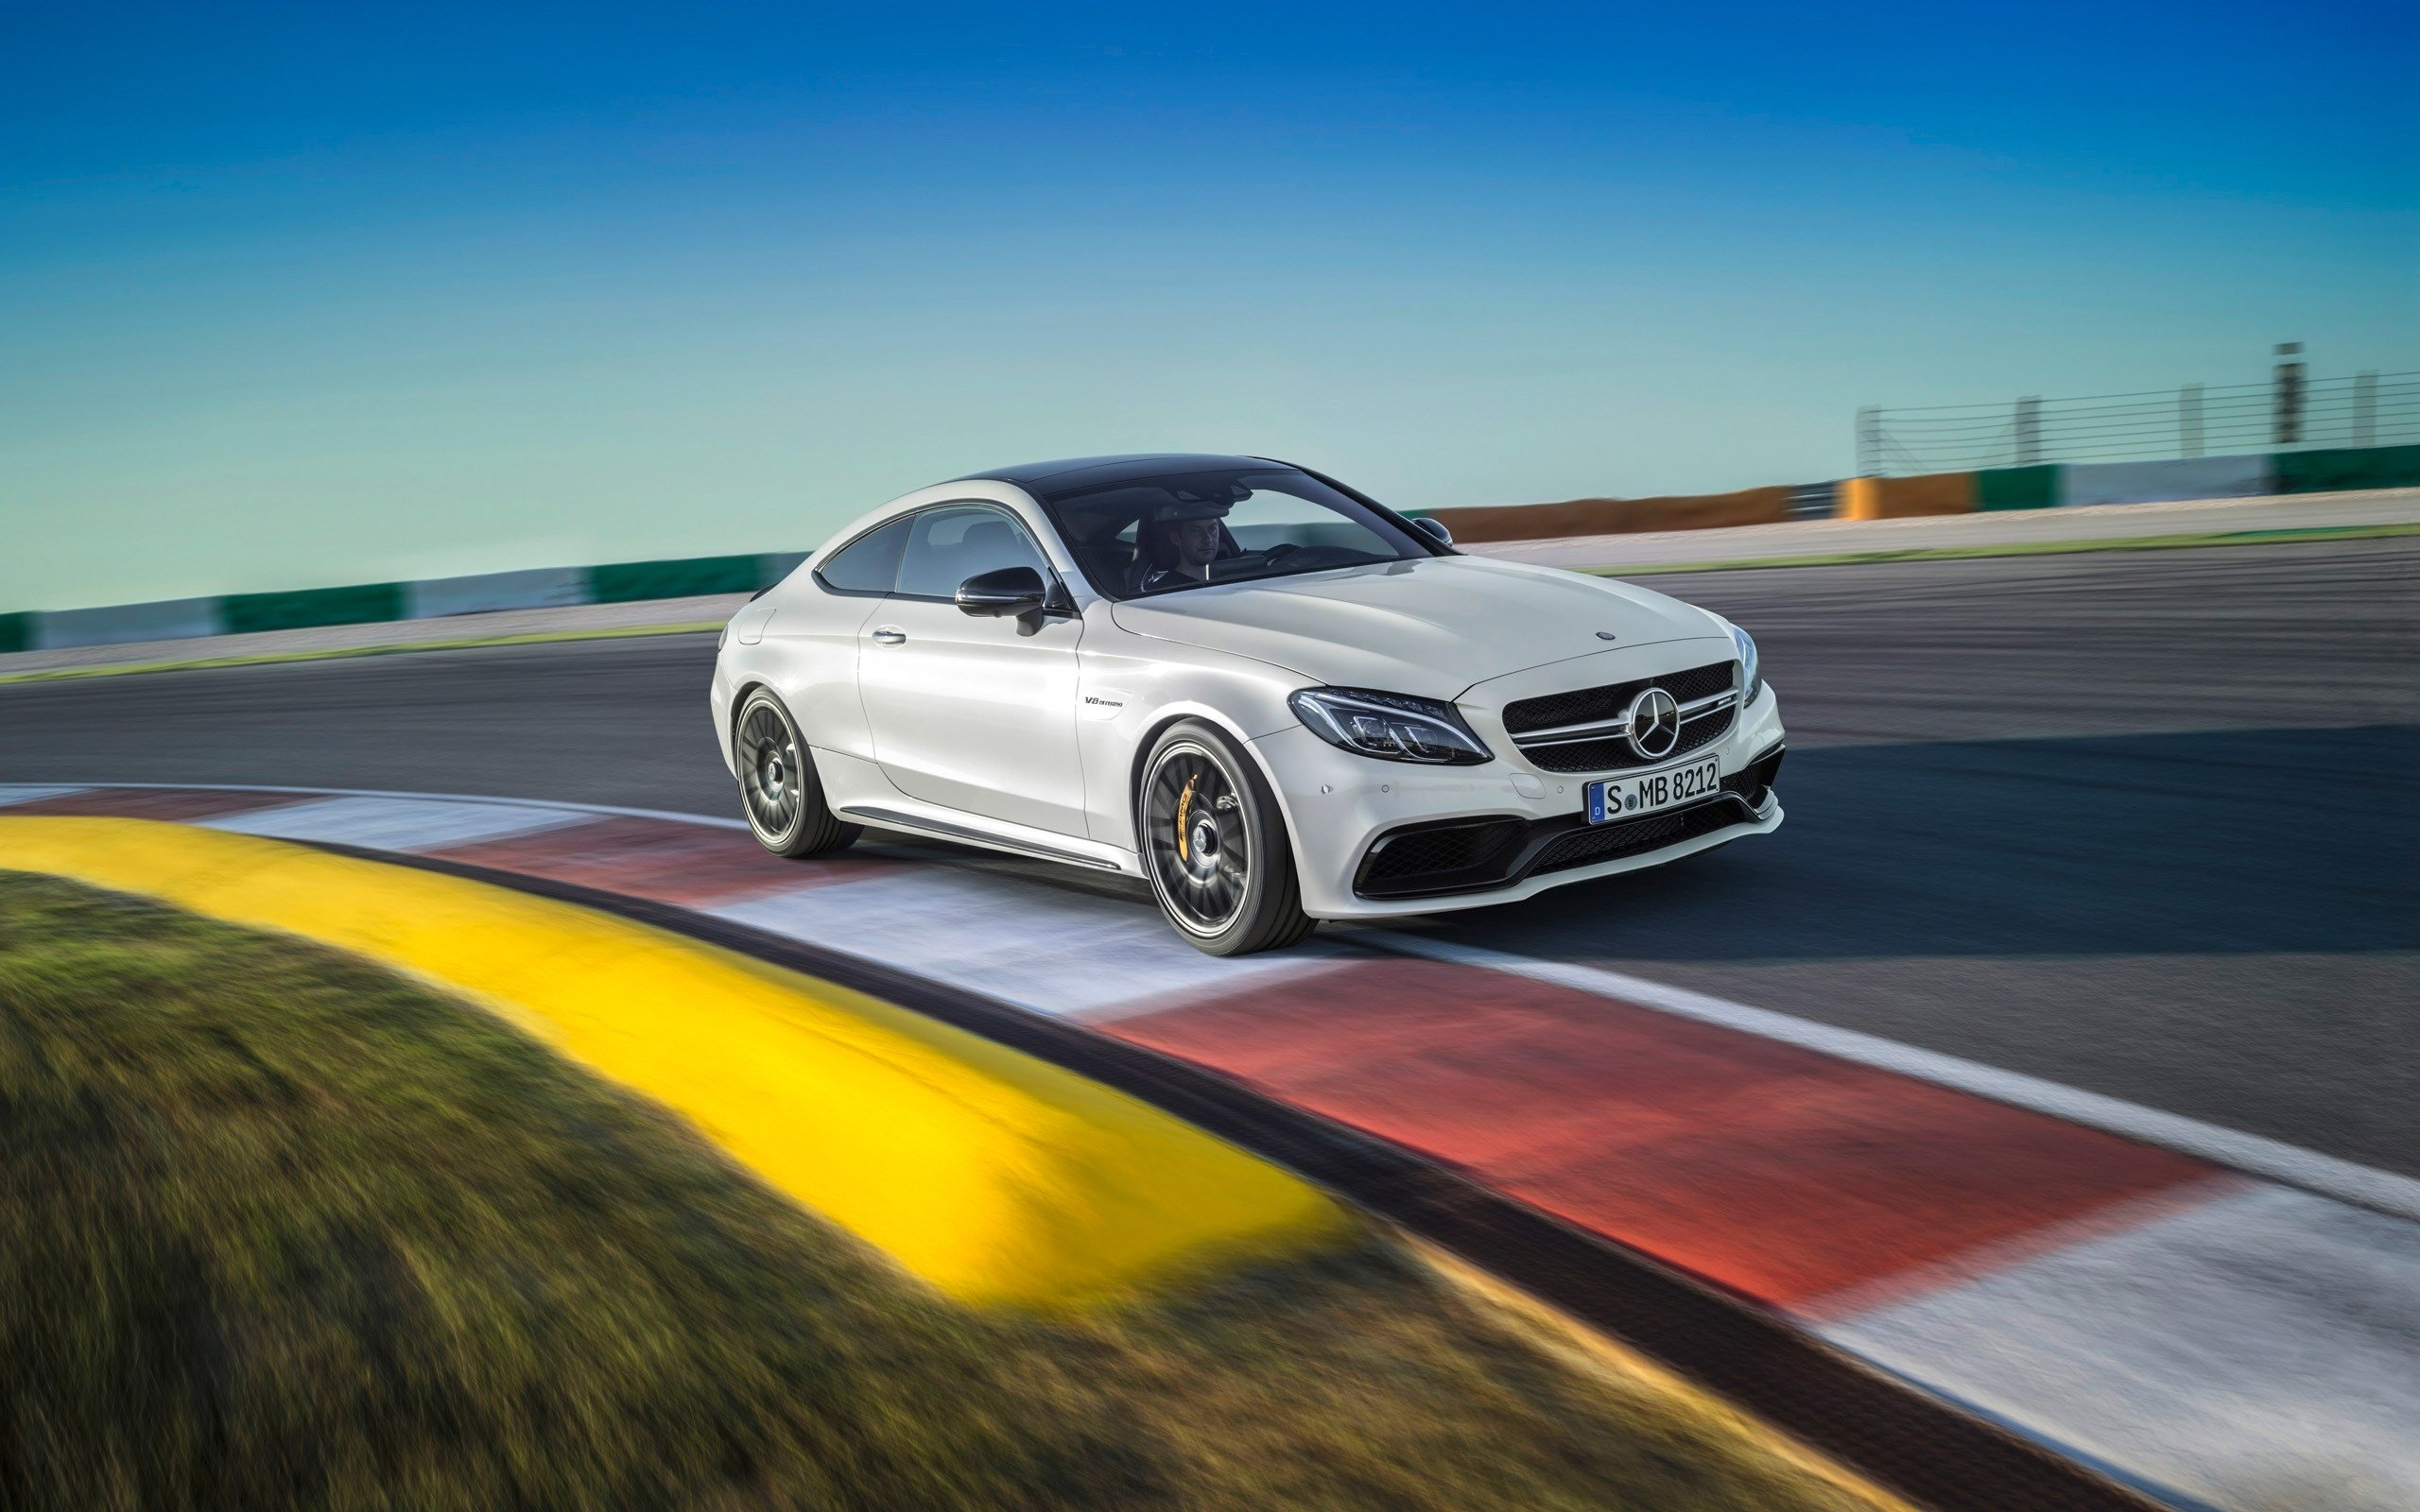 Latest 2016 Mercedes Amg C63 S Coupe Wallpaper Hd Car Free Download